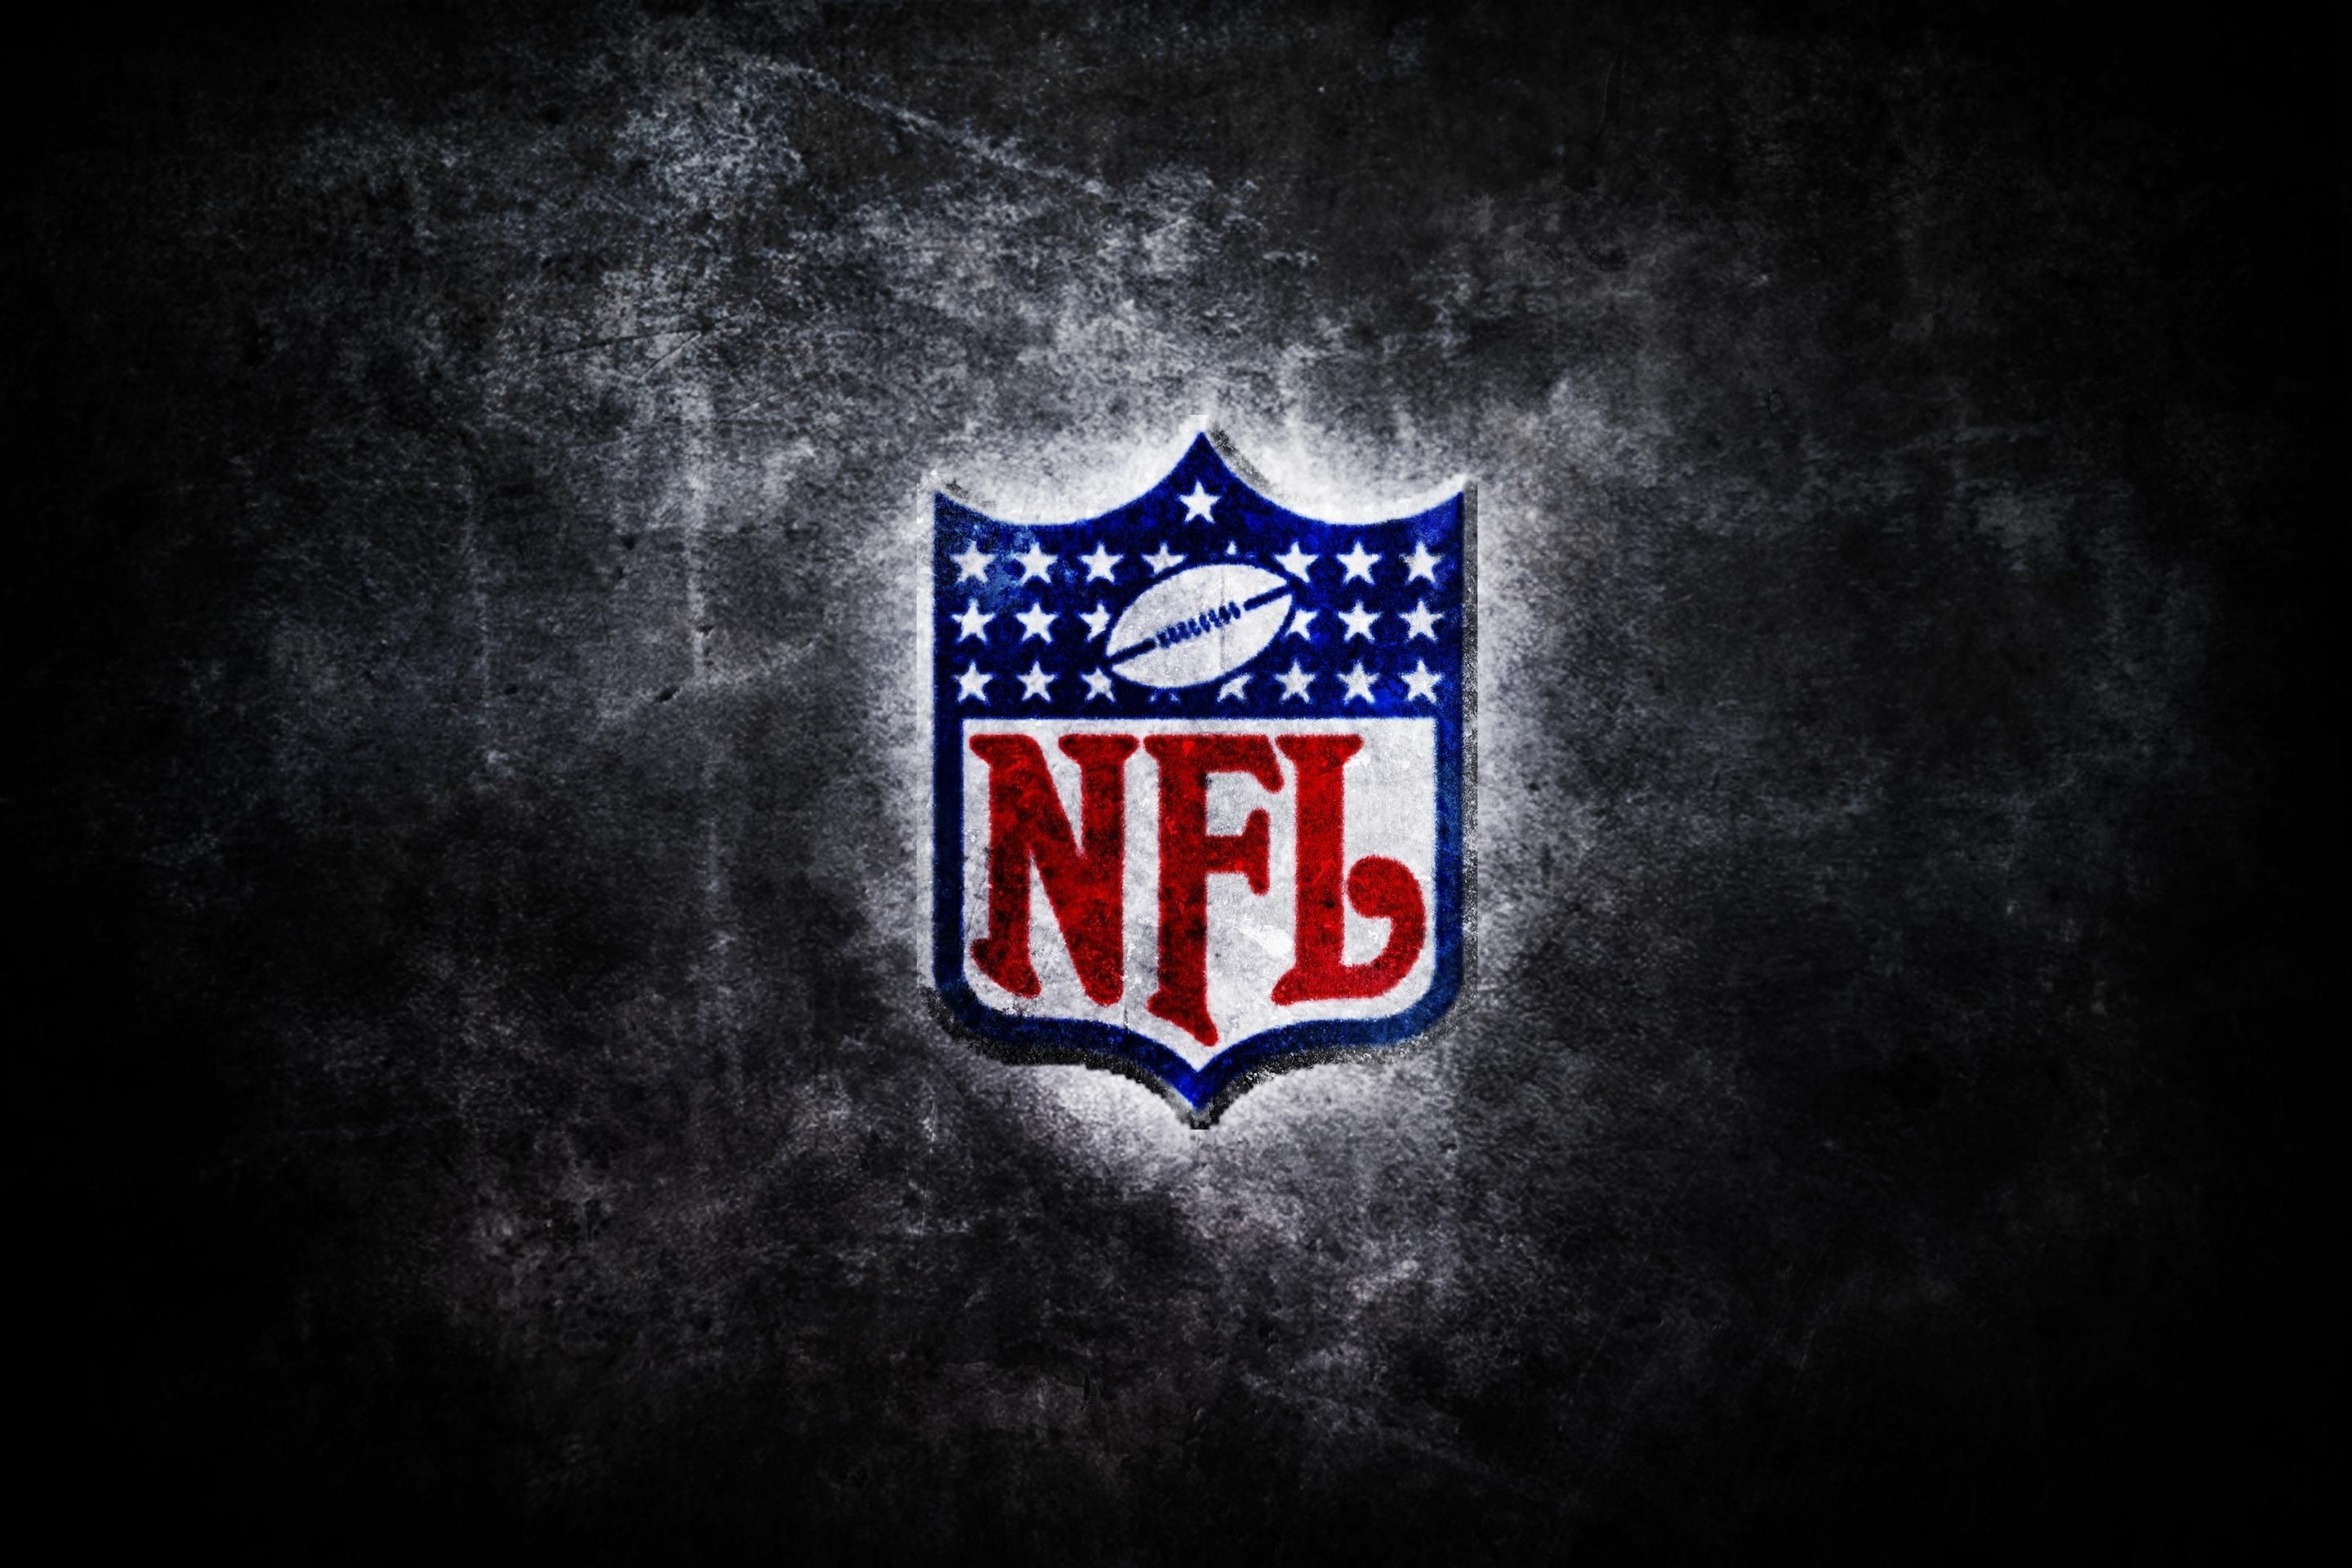 2880x1920 NFL Wallpapers Wallpaper